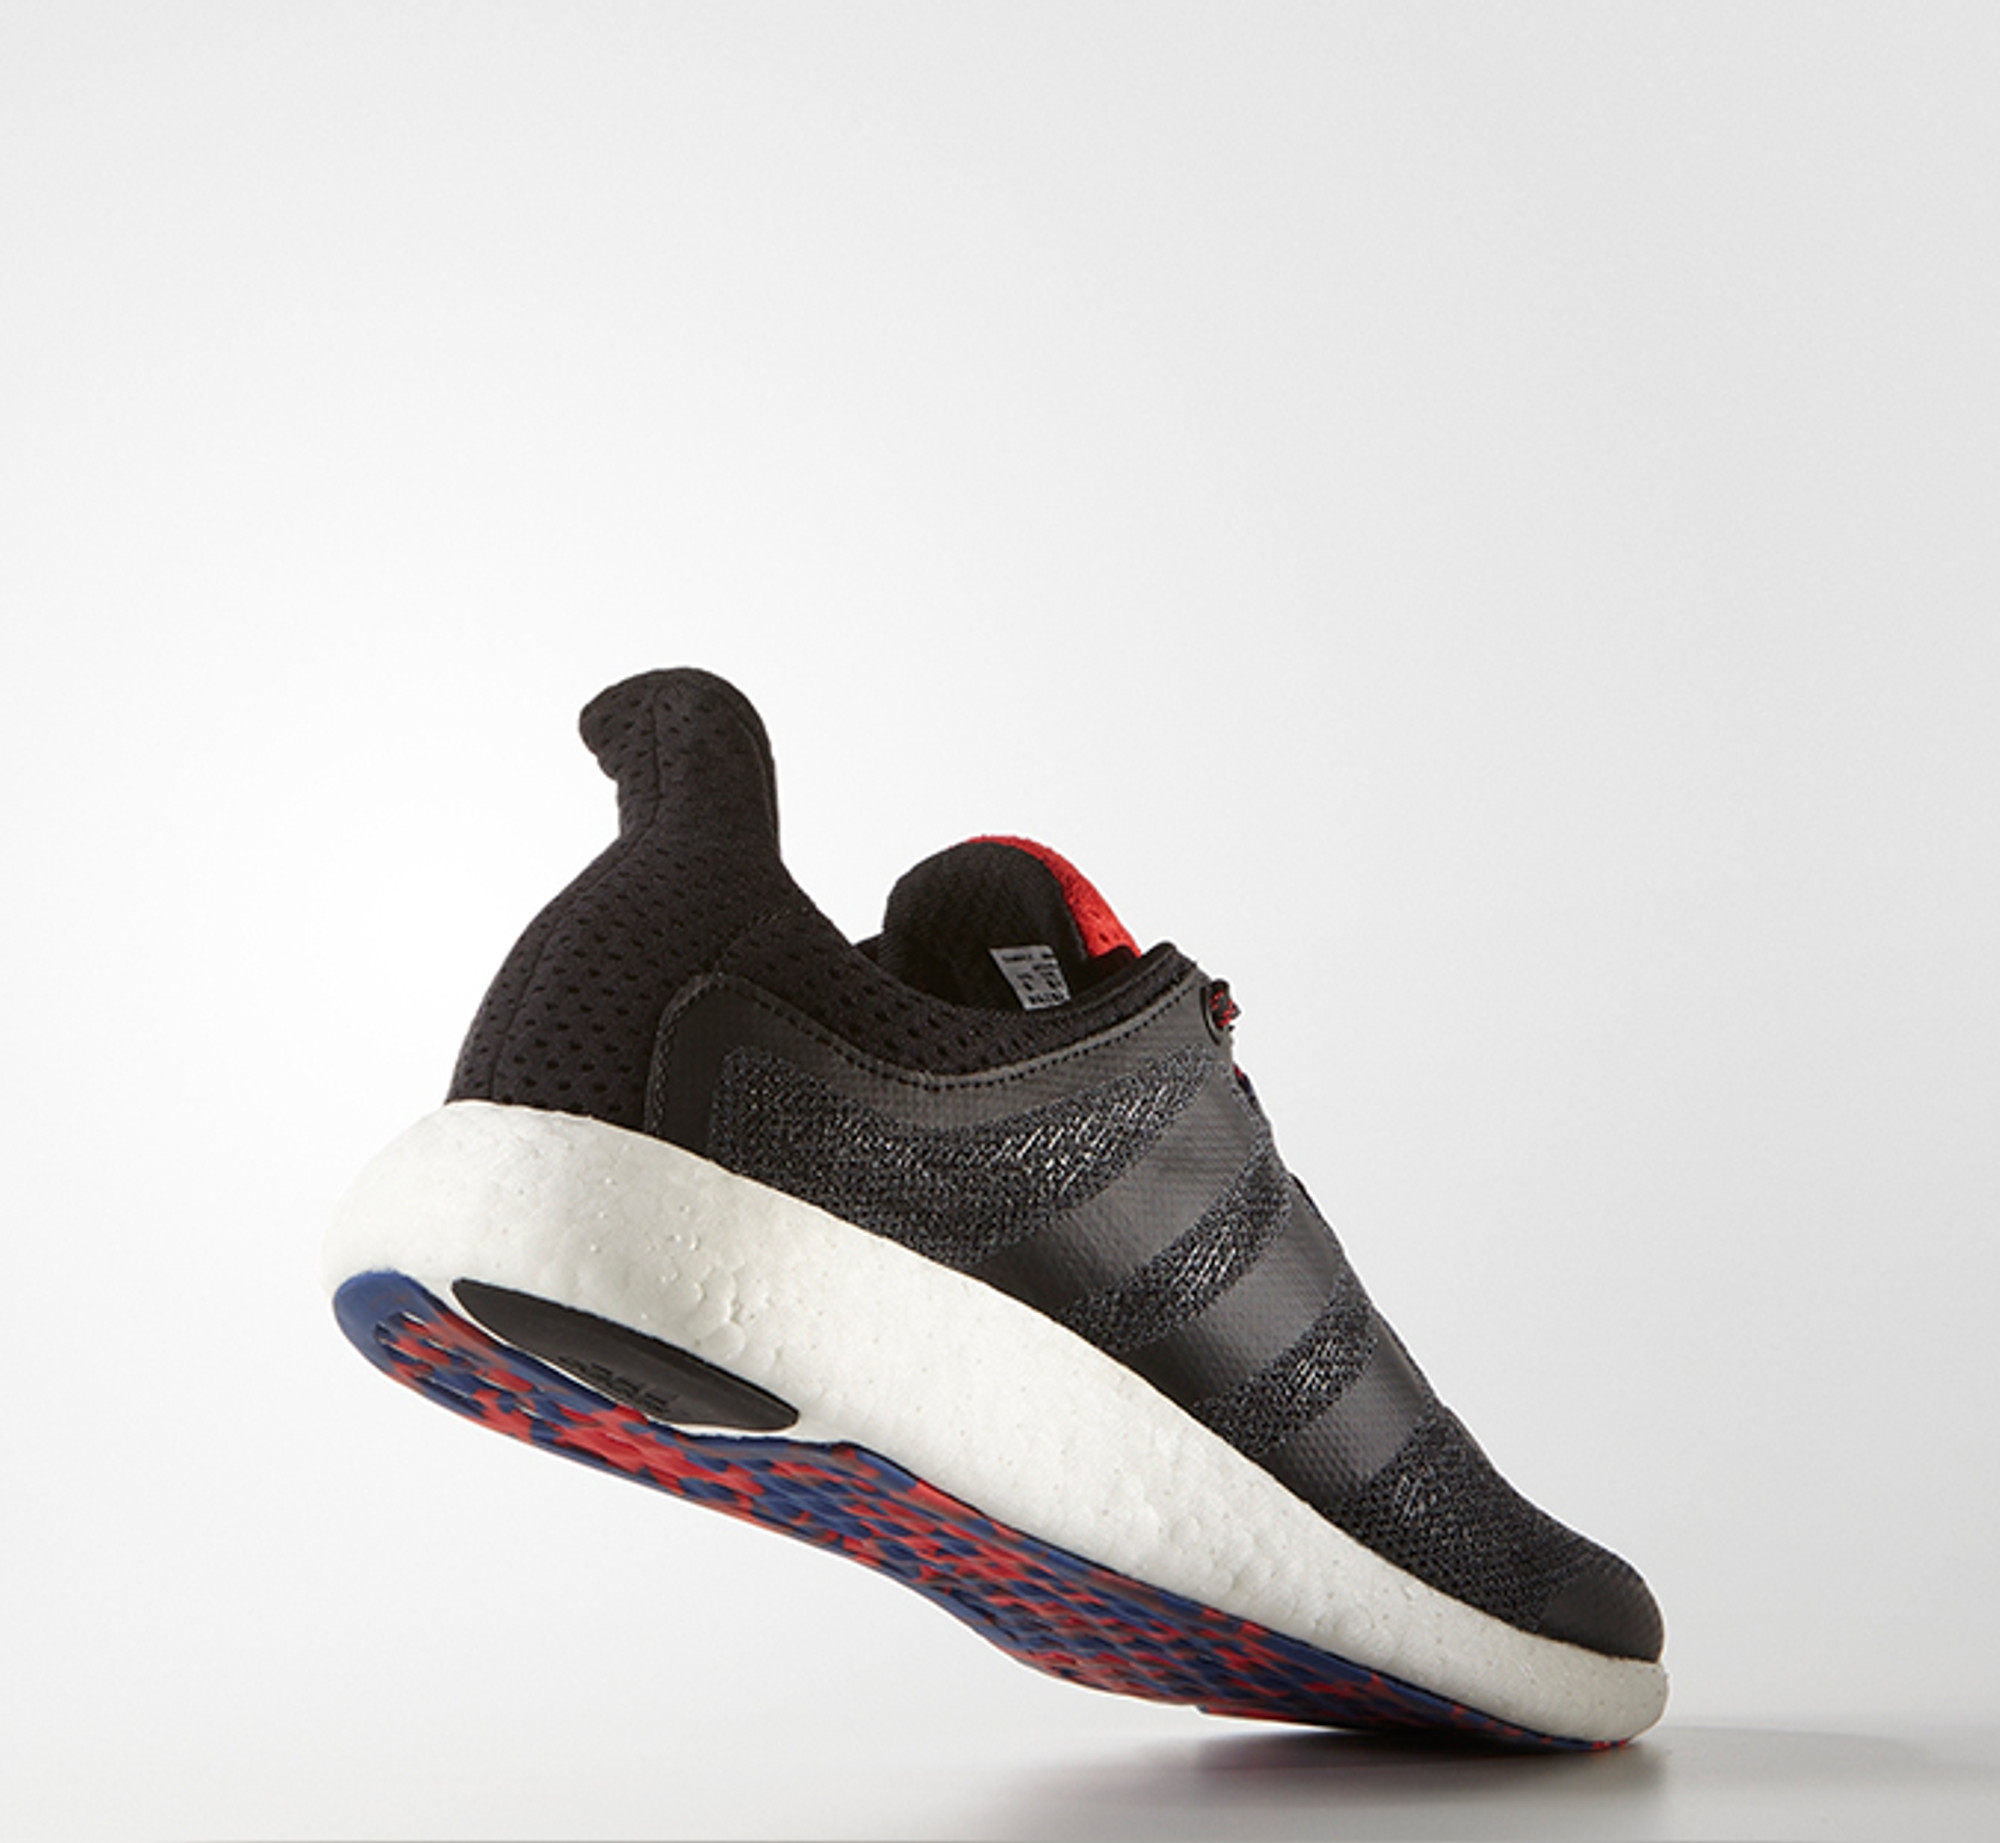 factory authentic los angeles official shop adidas Pureboost 2 AQ4439